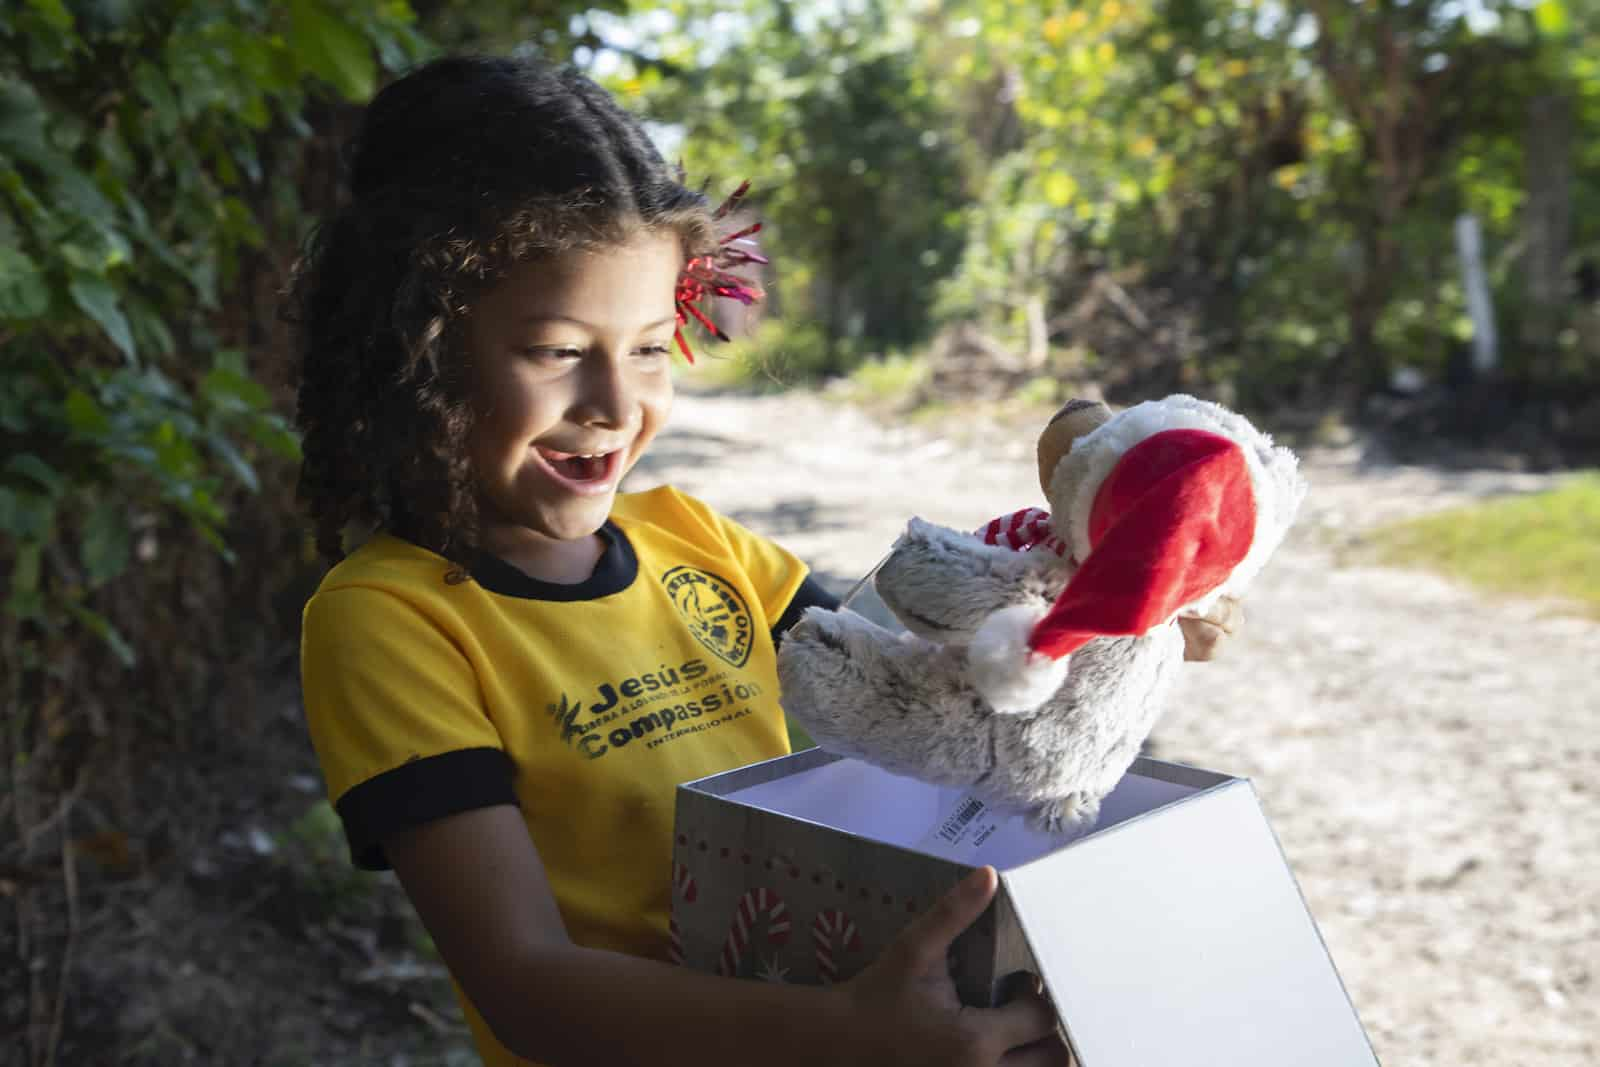 Christmas in El Salvador: A girl opens a gift with a teddy bear in it.